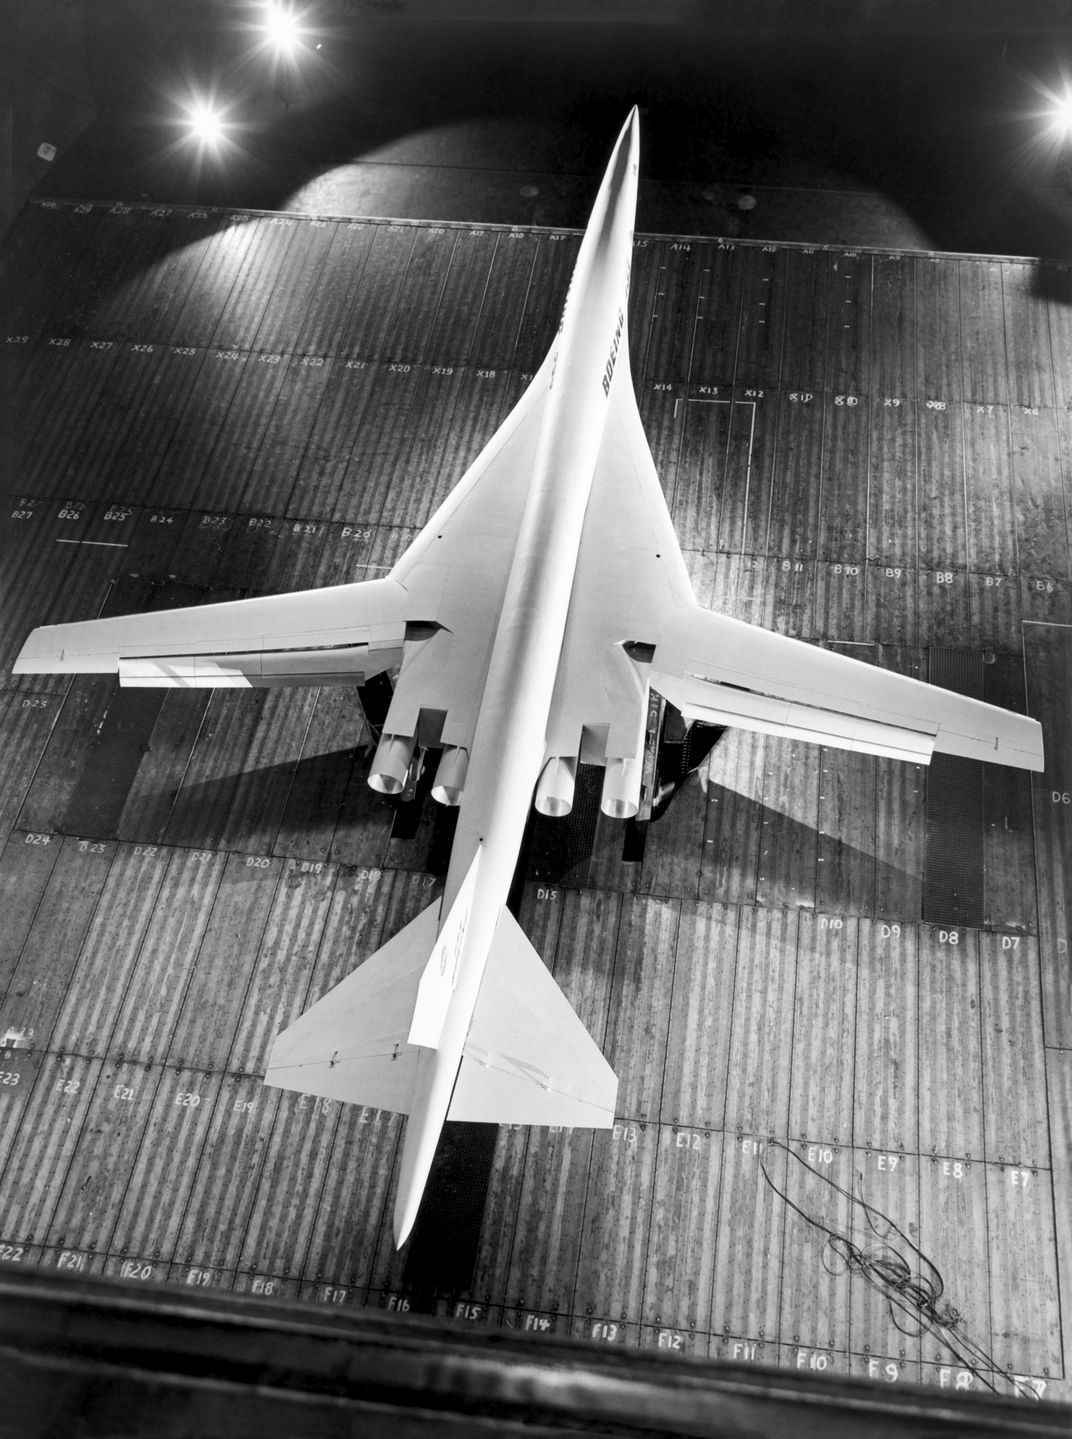 Boeing's supersonic